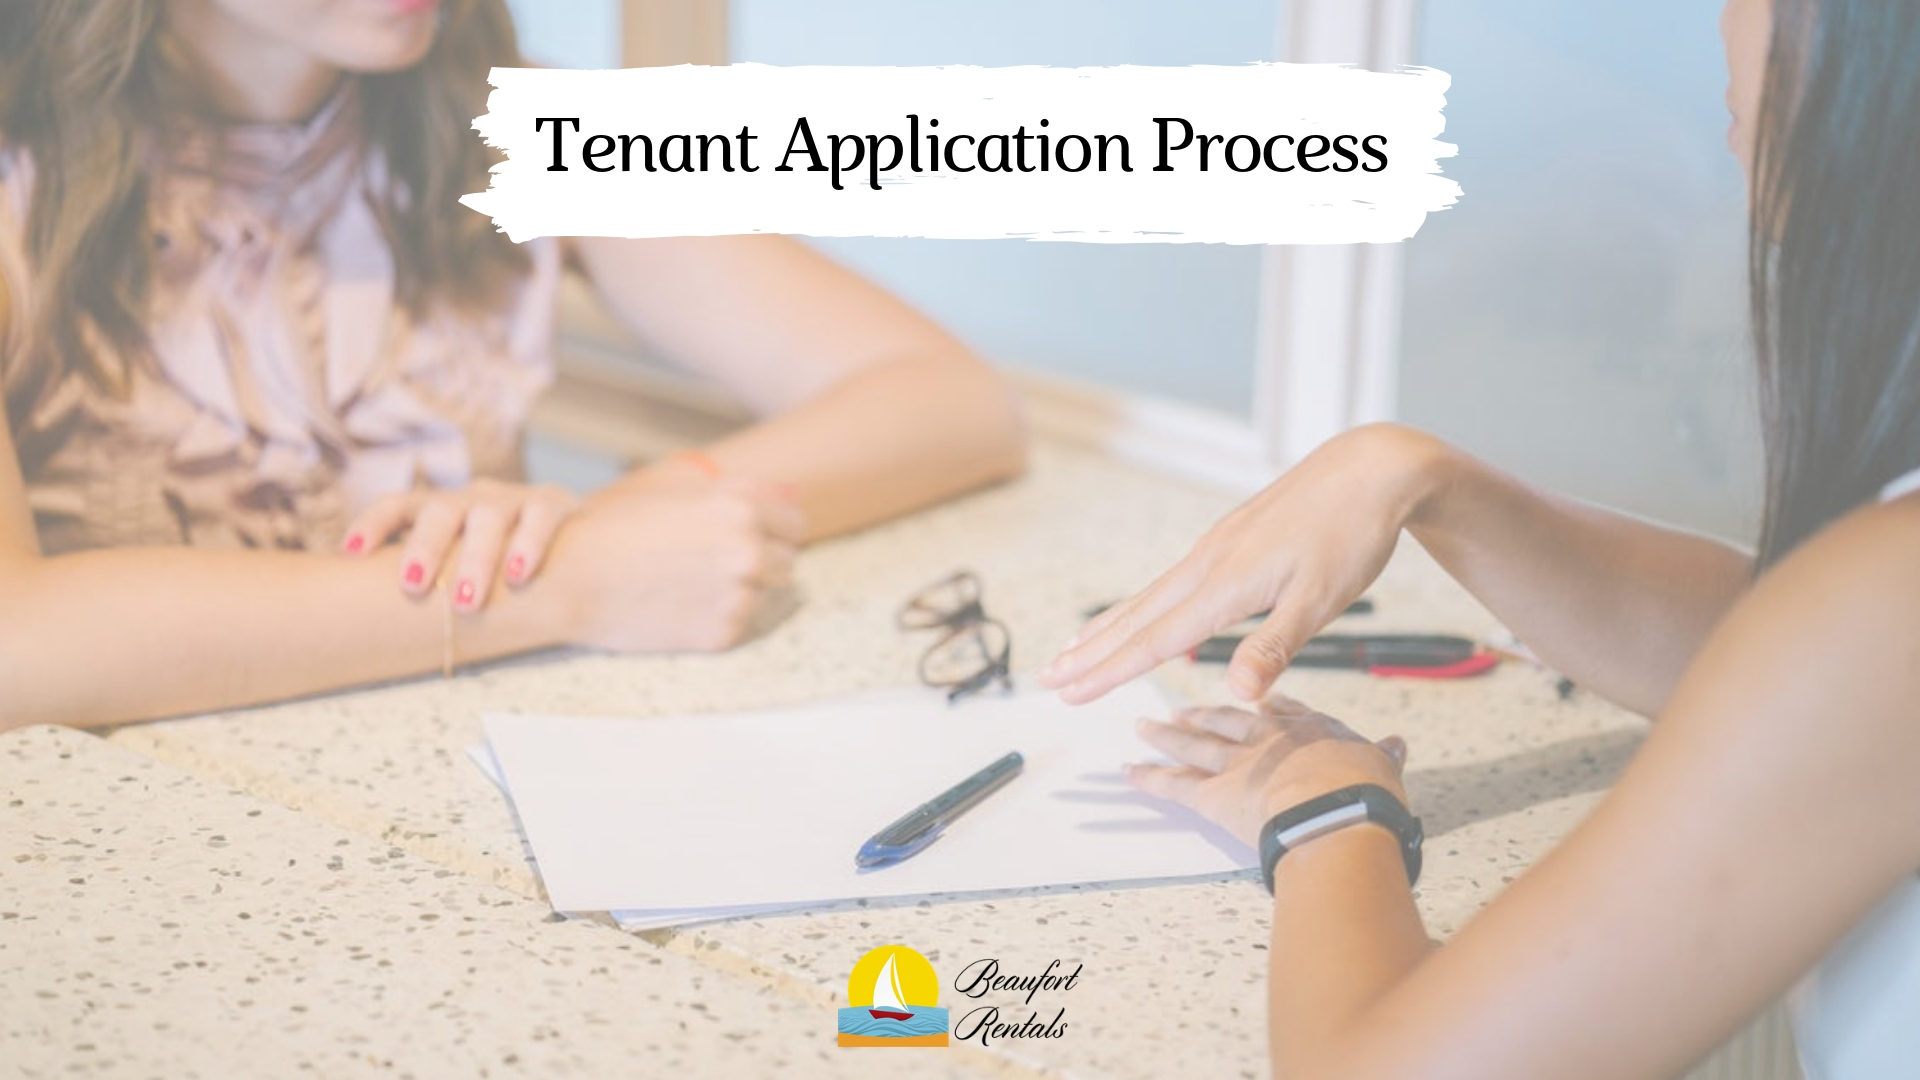 What is Included in the Tenant Application Process in Beaufort, SC?